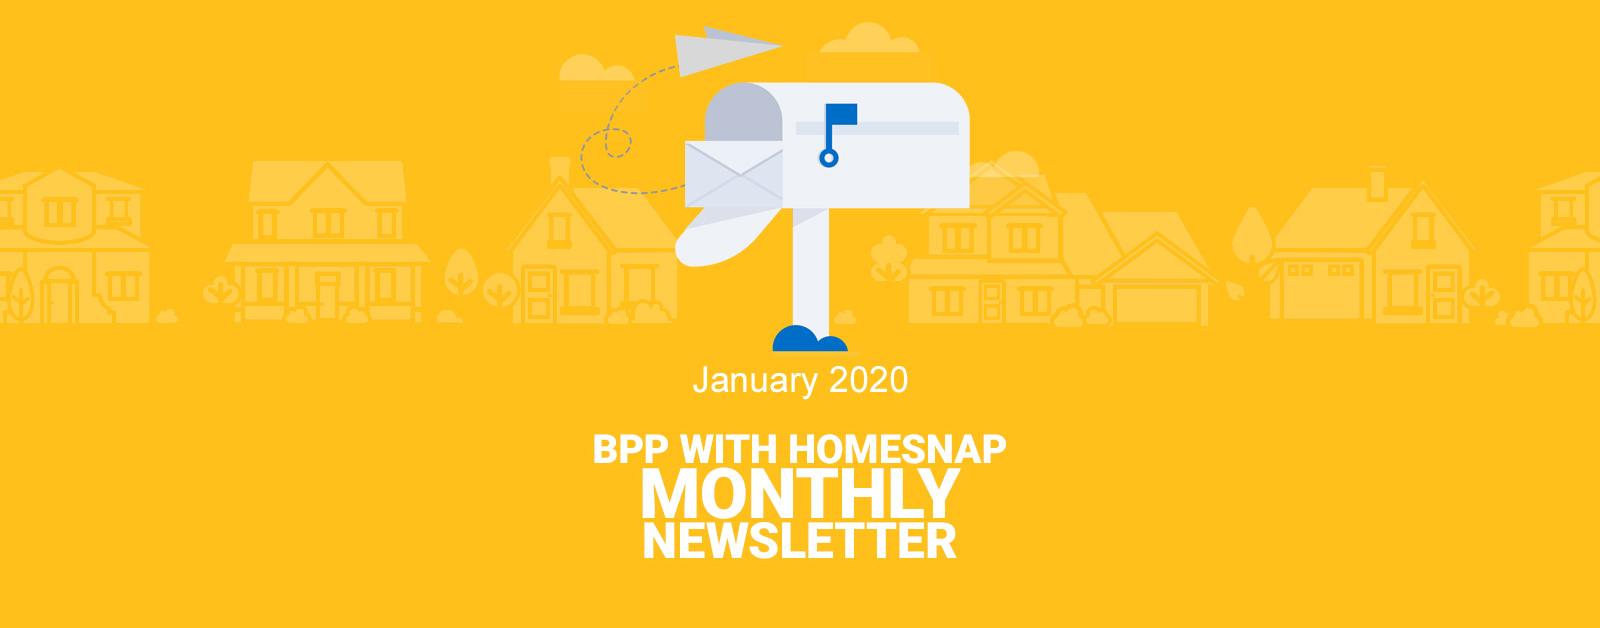 BPP Newsletter January 2020